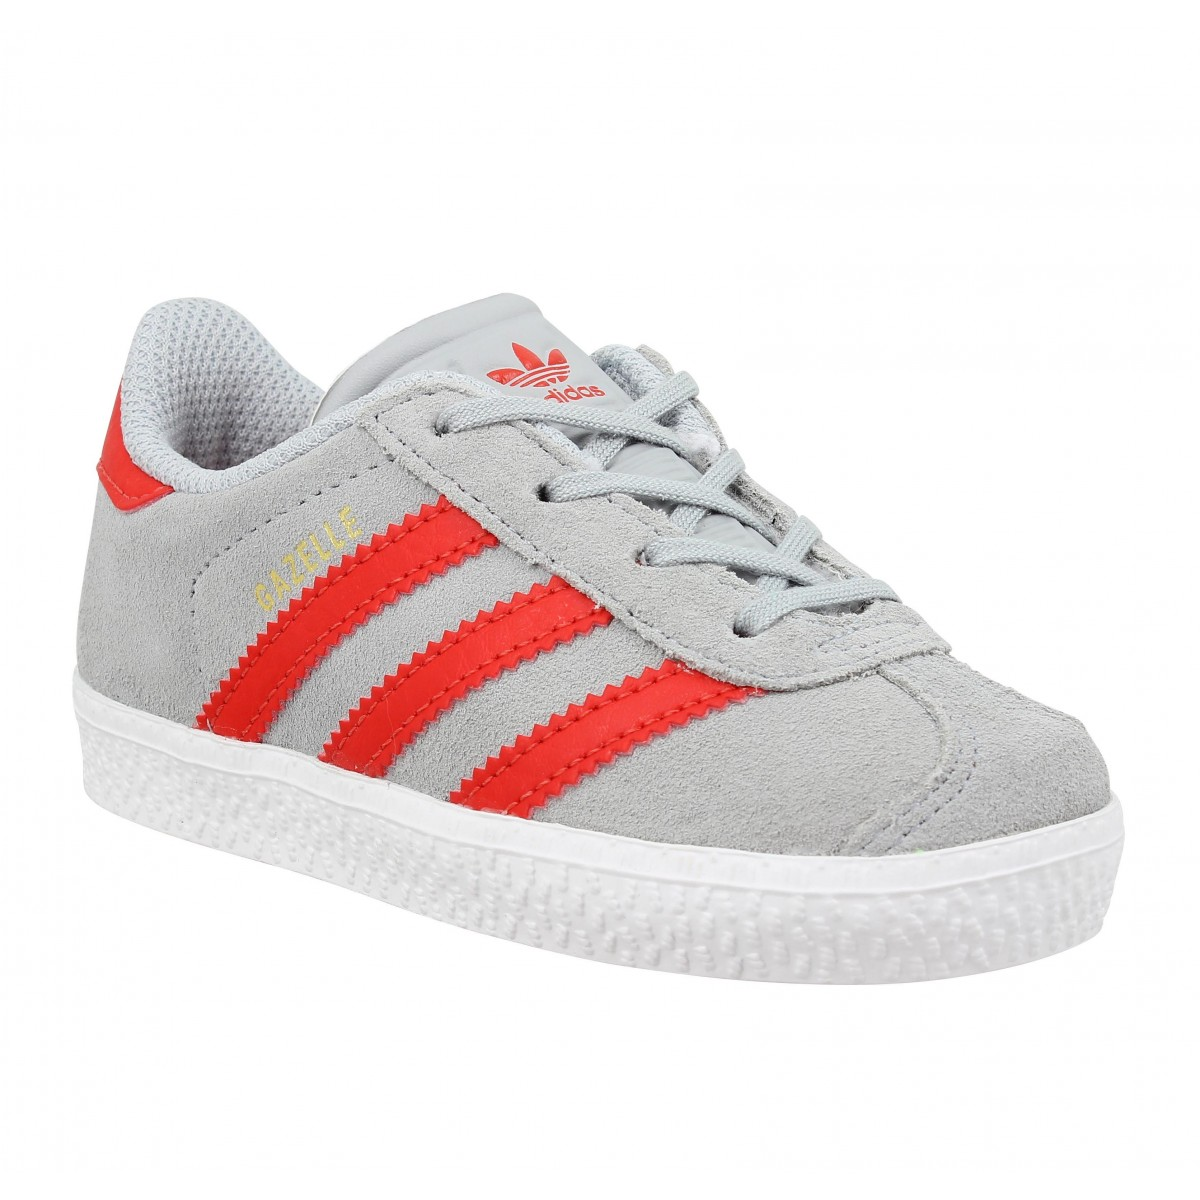 adidas gazelle enfant gris rouge enfants fanny chaussures. Black Bedroom Furniture Sets. Home Design Ideas